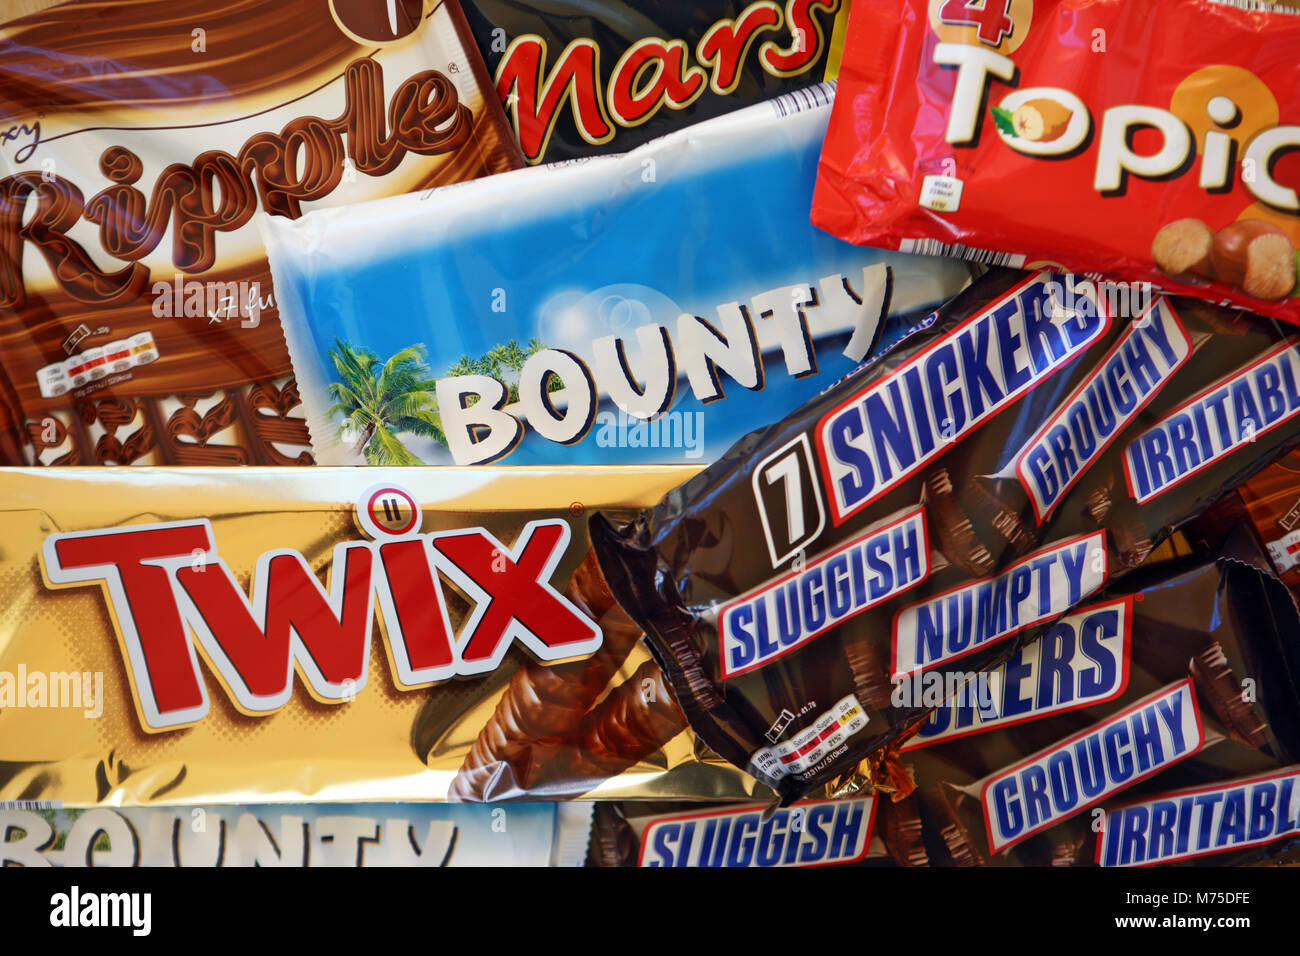 Multipacks of chocolate bars made by Mars, Incorporated including Bounty, Ripple, Twix, Mars, Topic & Snickers - Stock Image